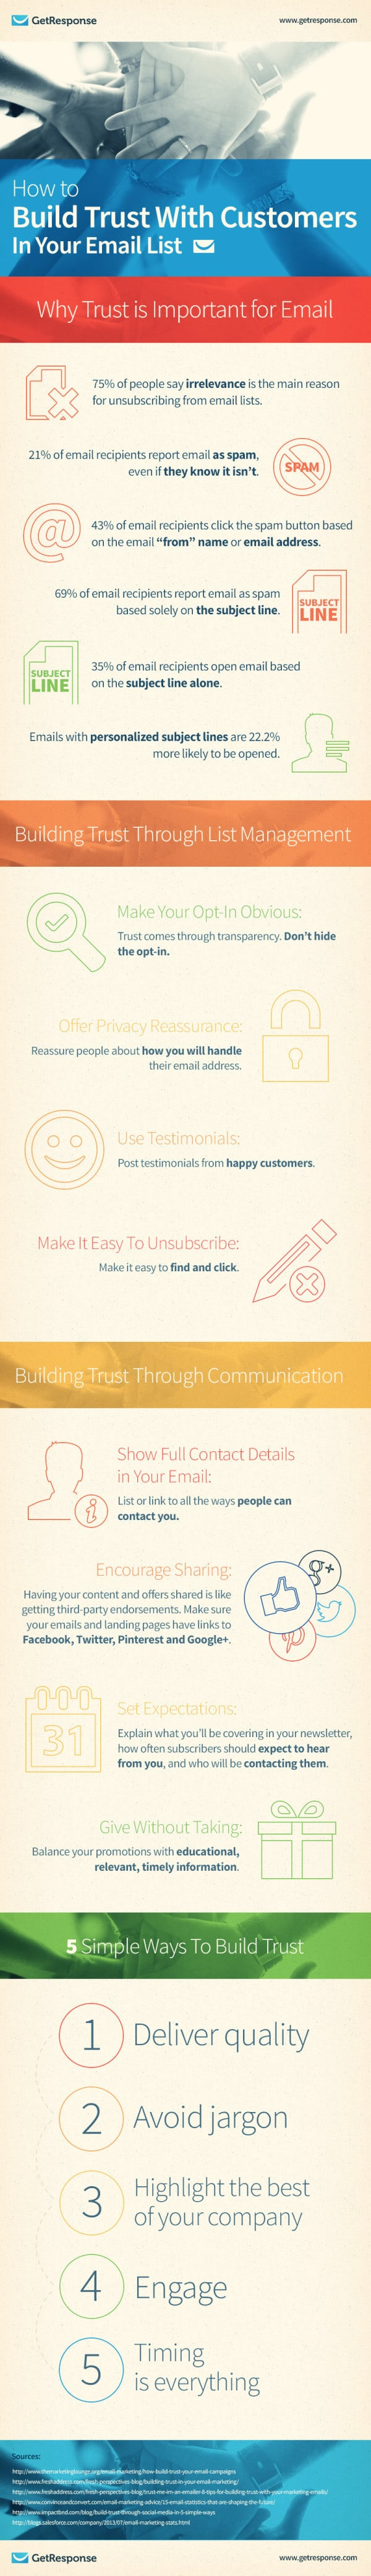 How-to-Build-Trust-with-Customers-in-Your-Email-List-600x4164